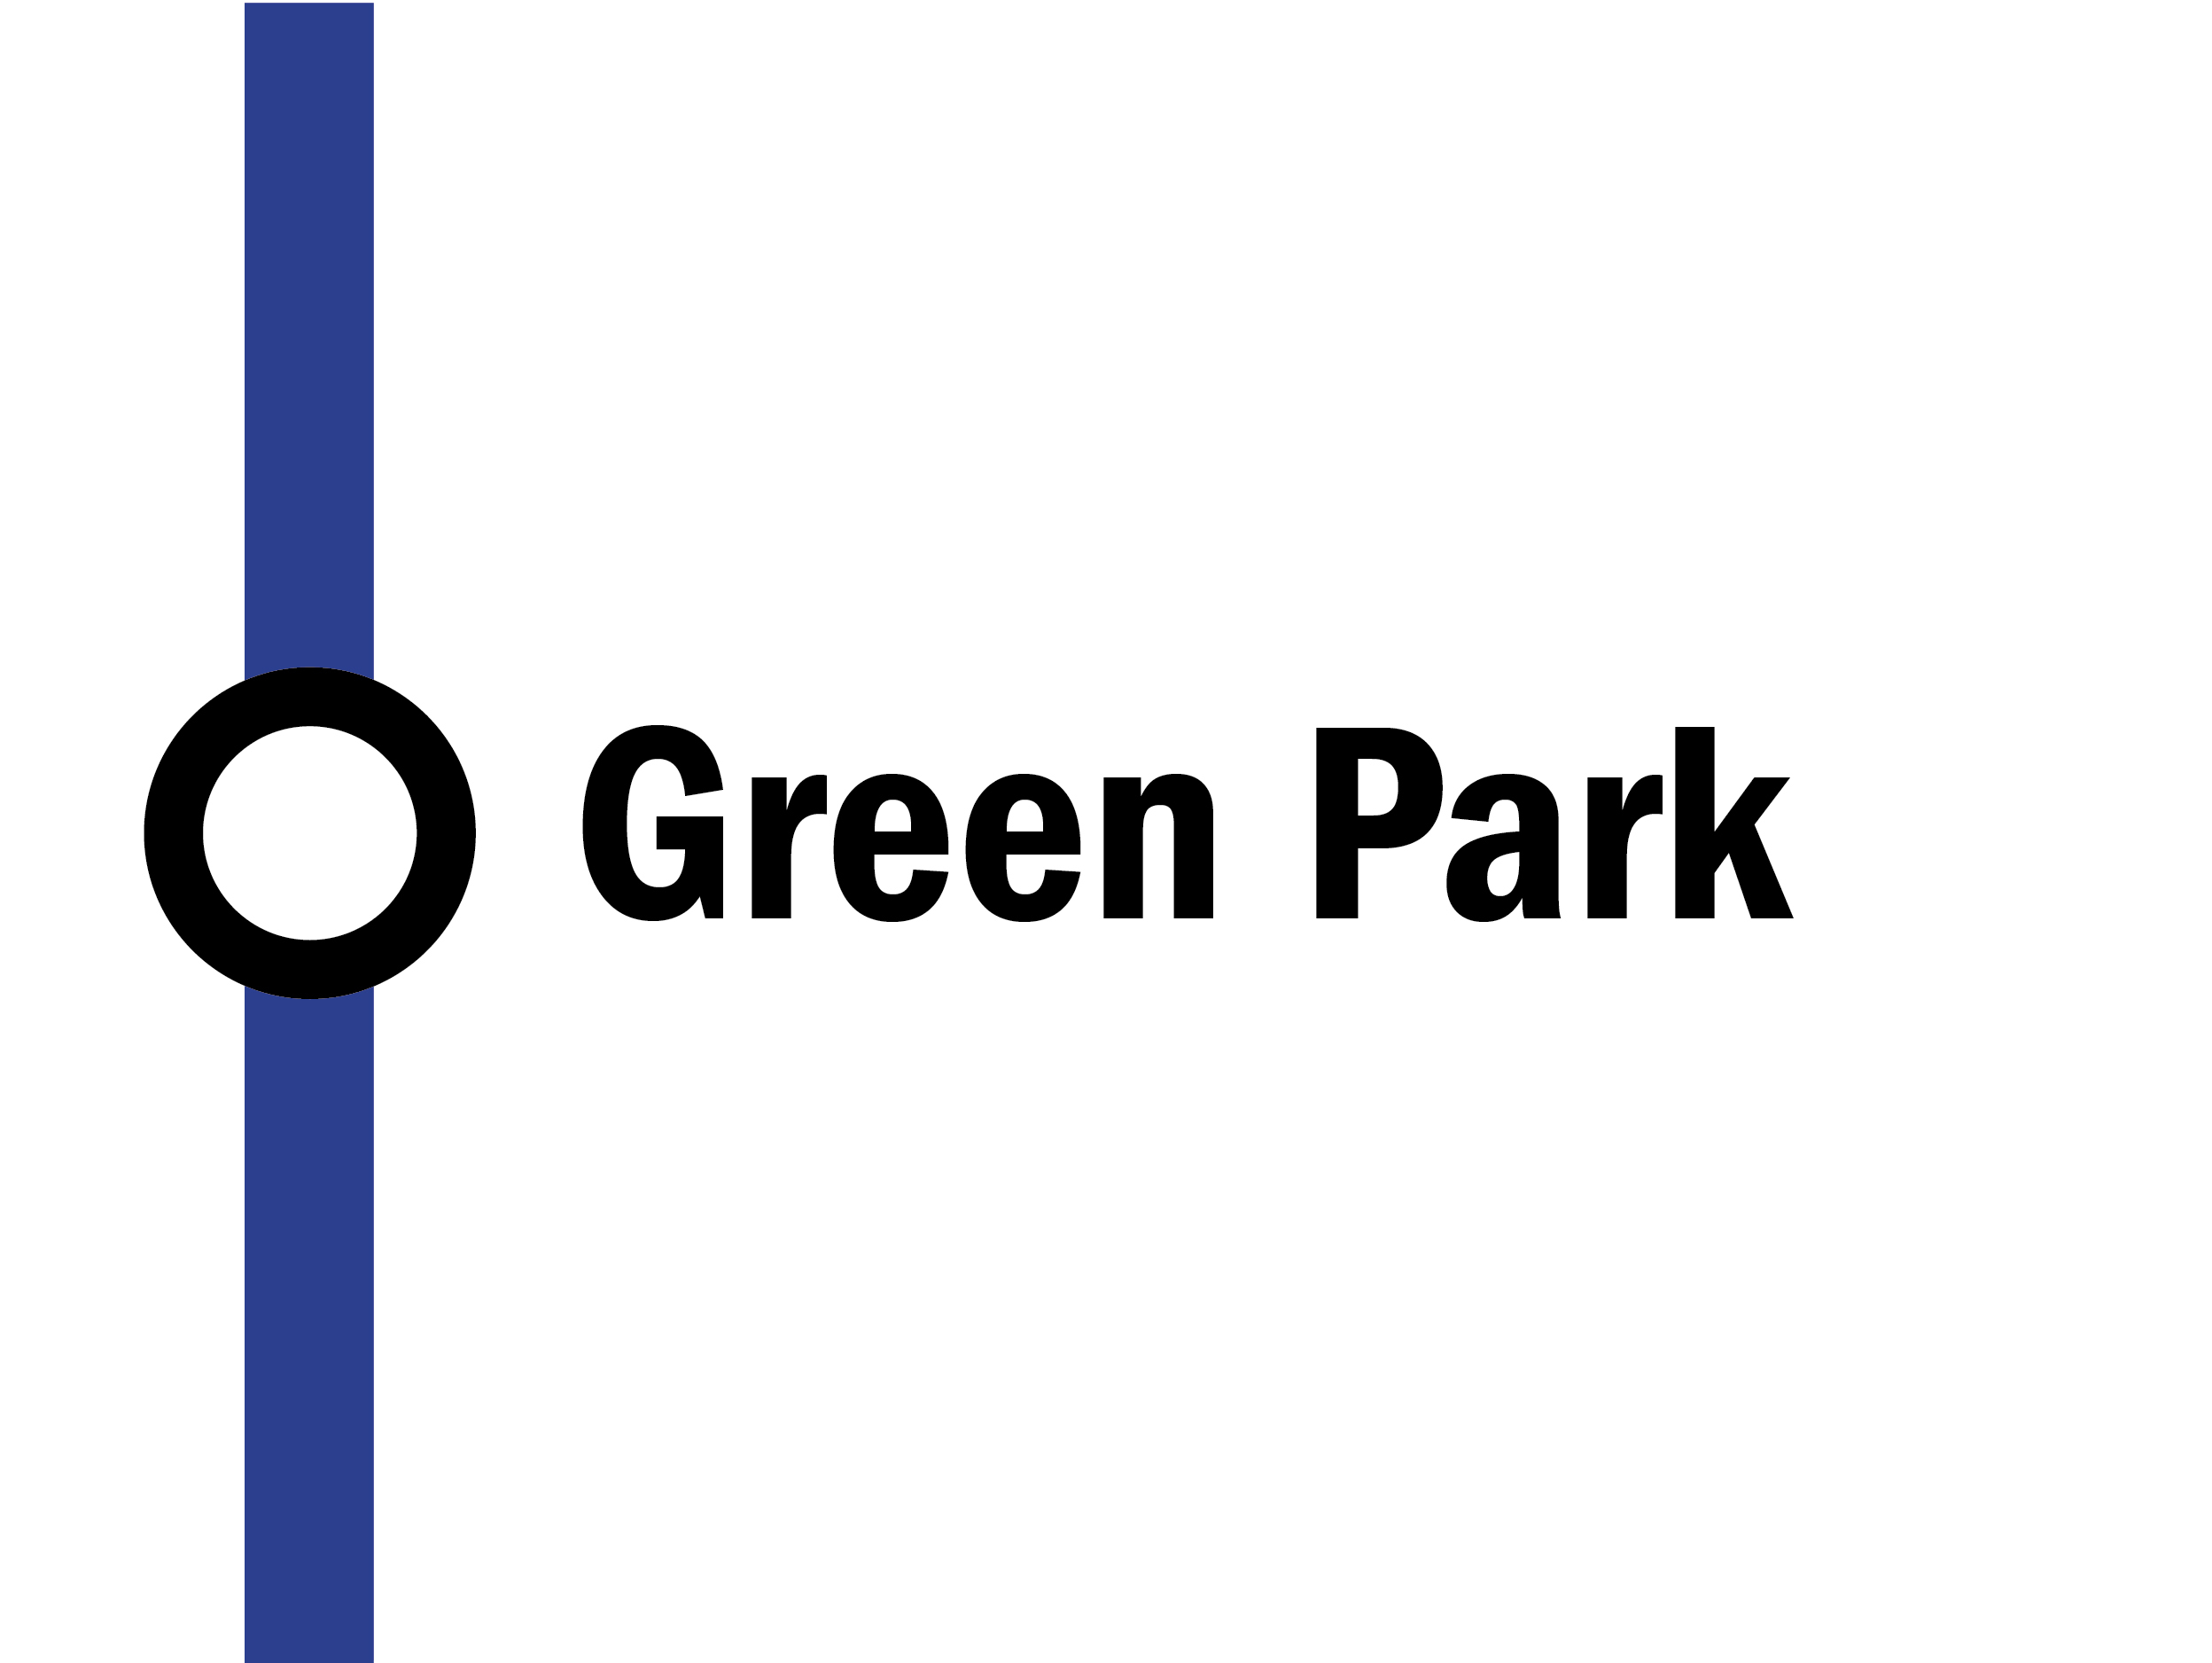 Green Park, Piccadilly Line